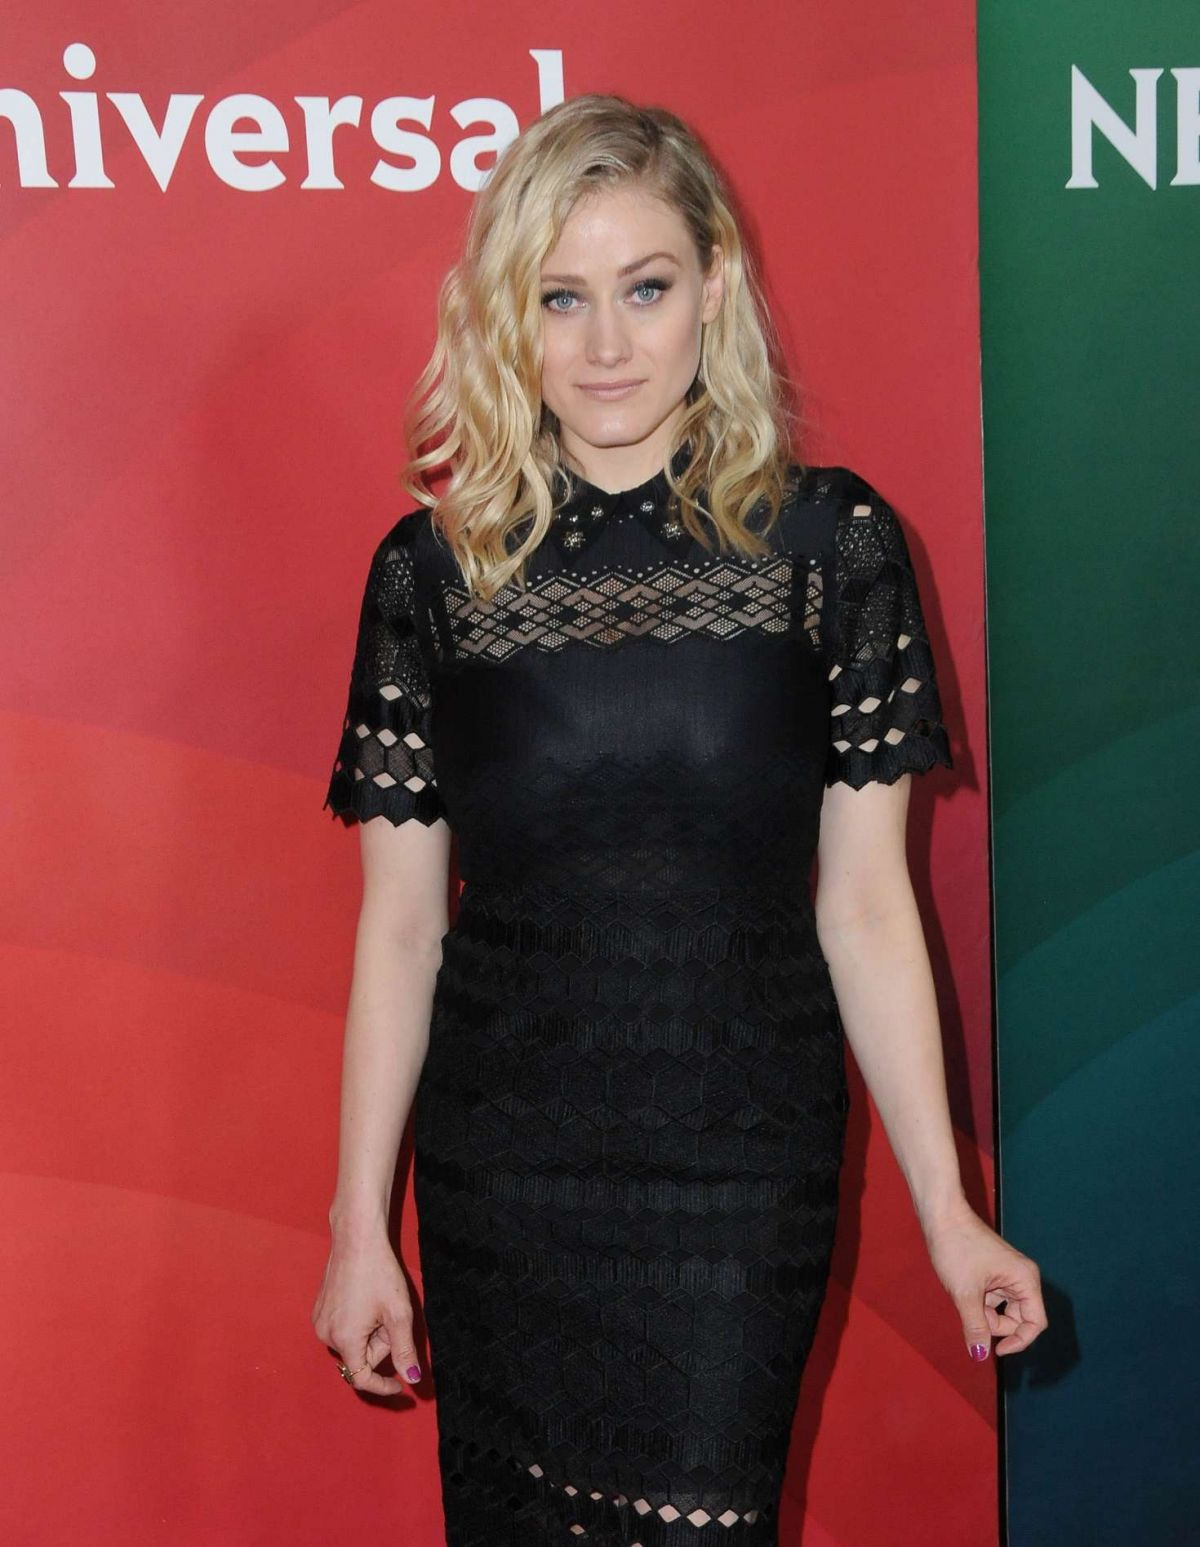 OLIVIA TAYLOR DUDLEY at NBC/Universal 2017 Winter TCA Press Tour in Pasadena 01/17/2017